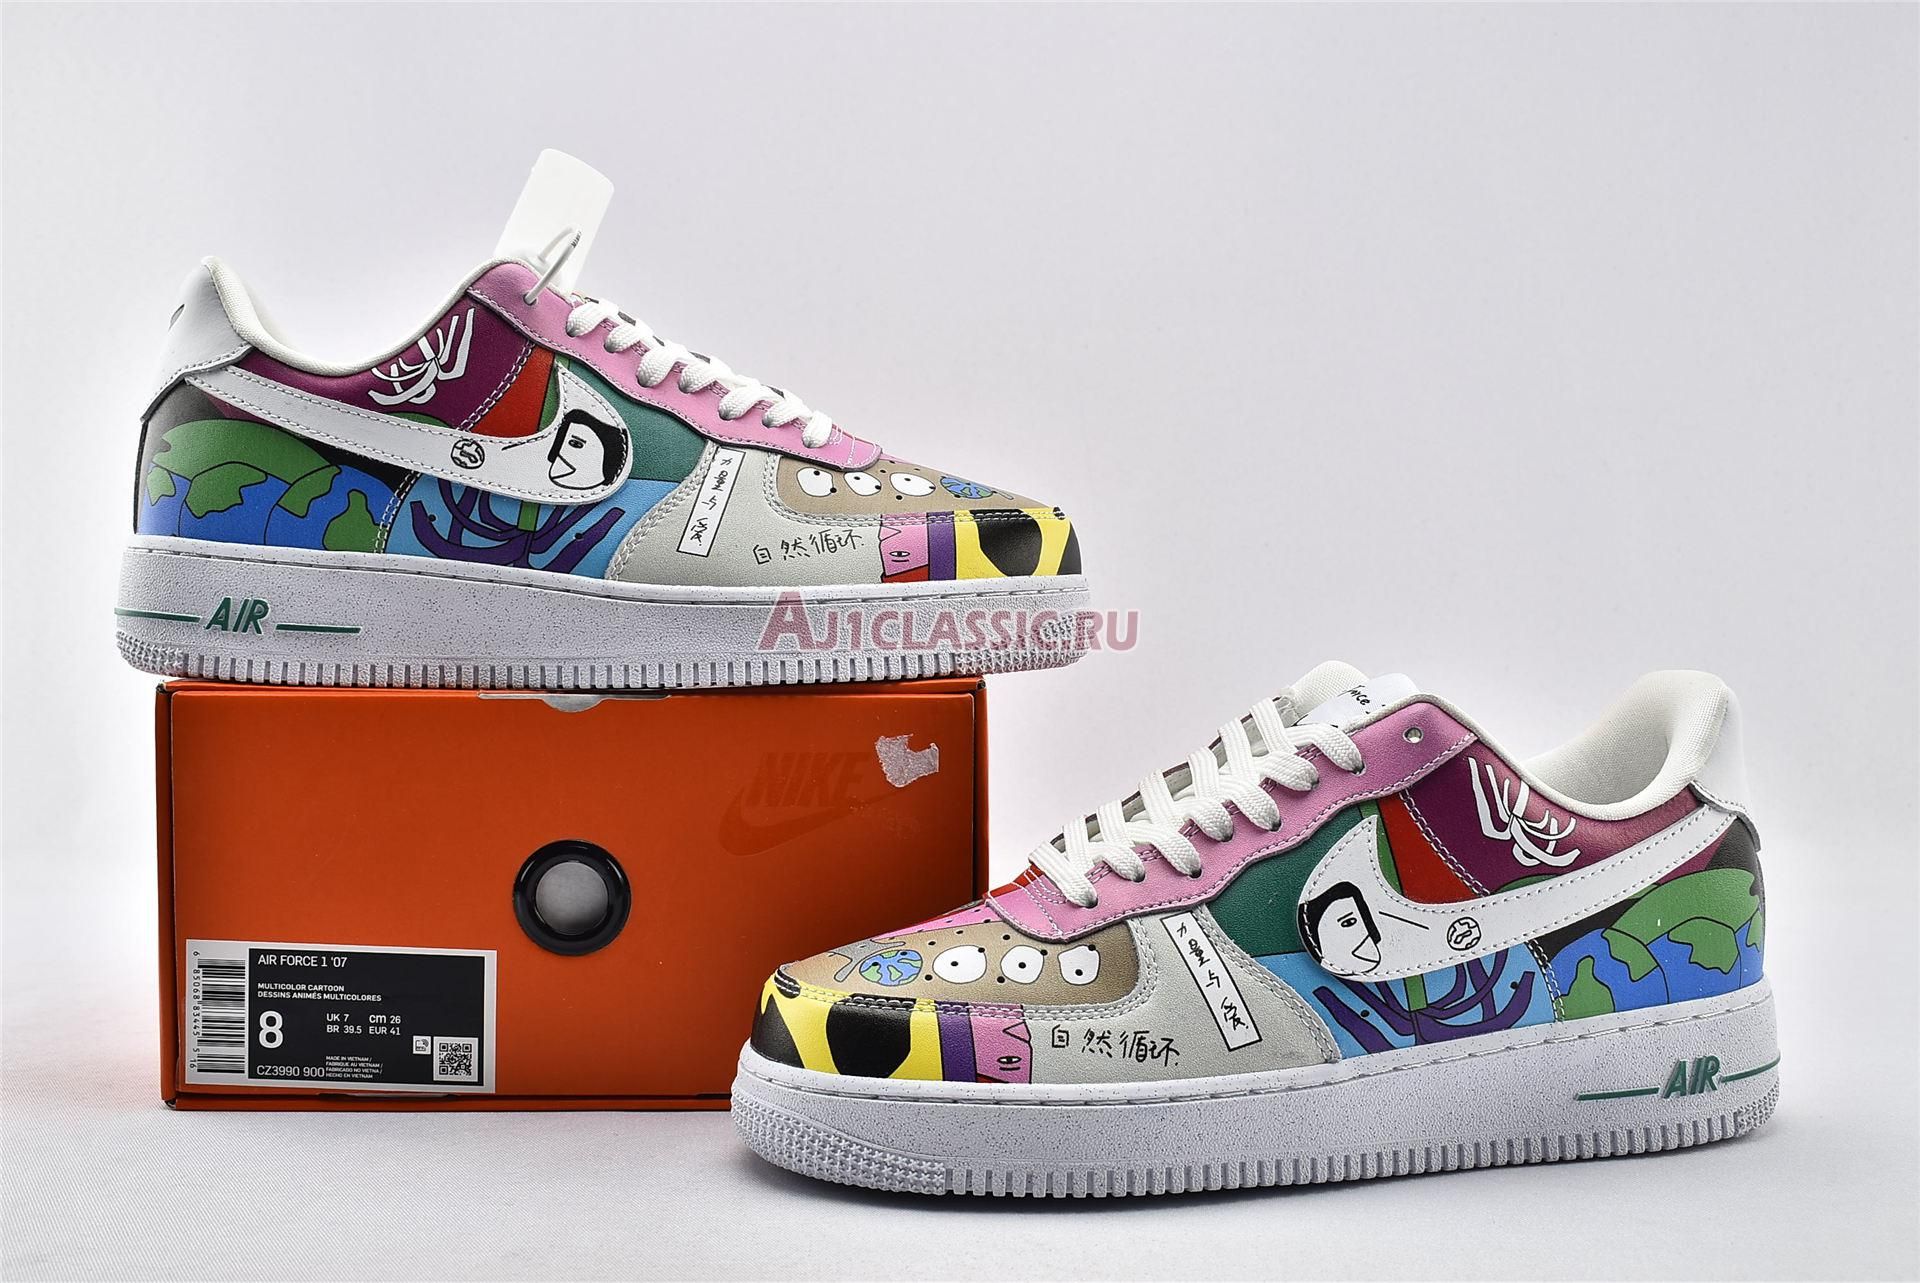 Ruohan Wang x Nike Air Force 1 Flyleather CZ3990-900